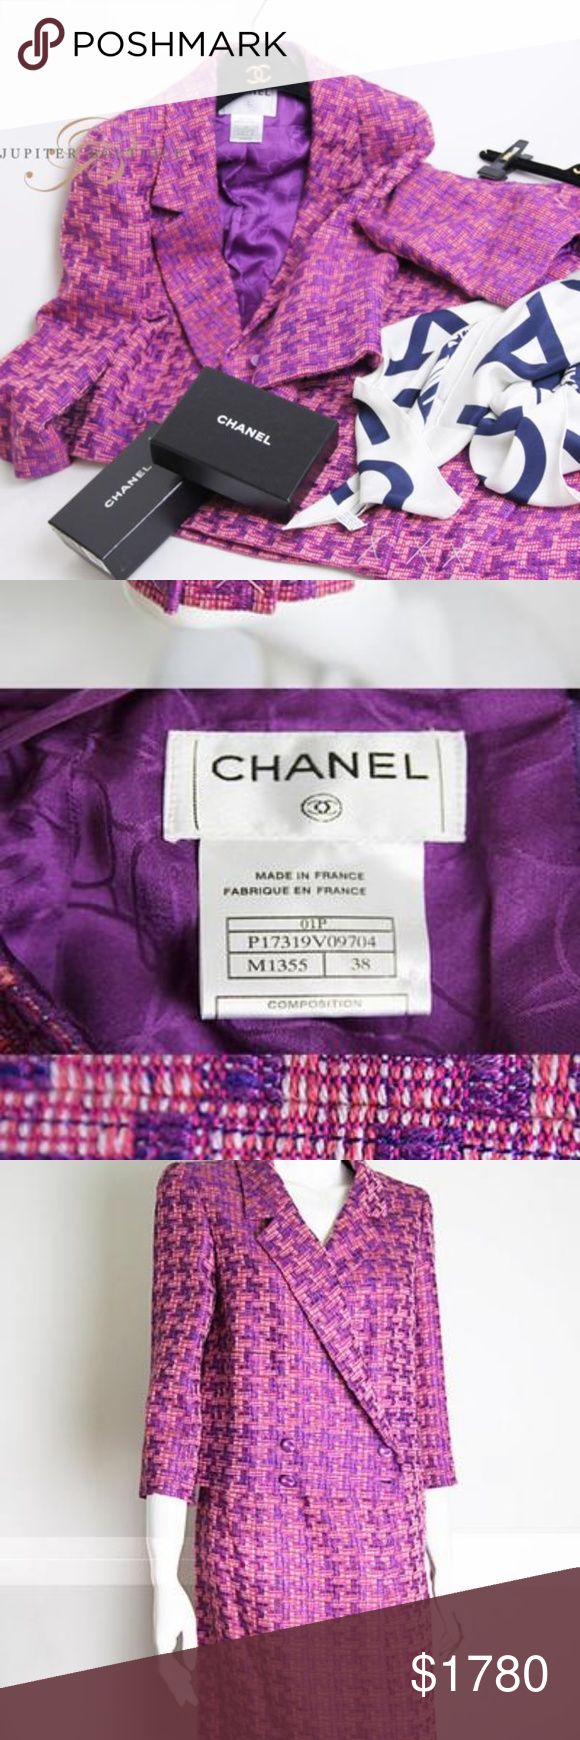 Chanel Tweed Suit Jacket and skirt Classic 100% Authentic Chanel Suite Set - Jacket and Skirt   Super Beautiful and Elegance   size : FR38  Jacket can be matched with Denim Jeans .   The scarf and hanger are NOT included   It was originally $2800 USD CHANEL Jackets & Coats Blazers